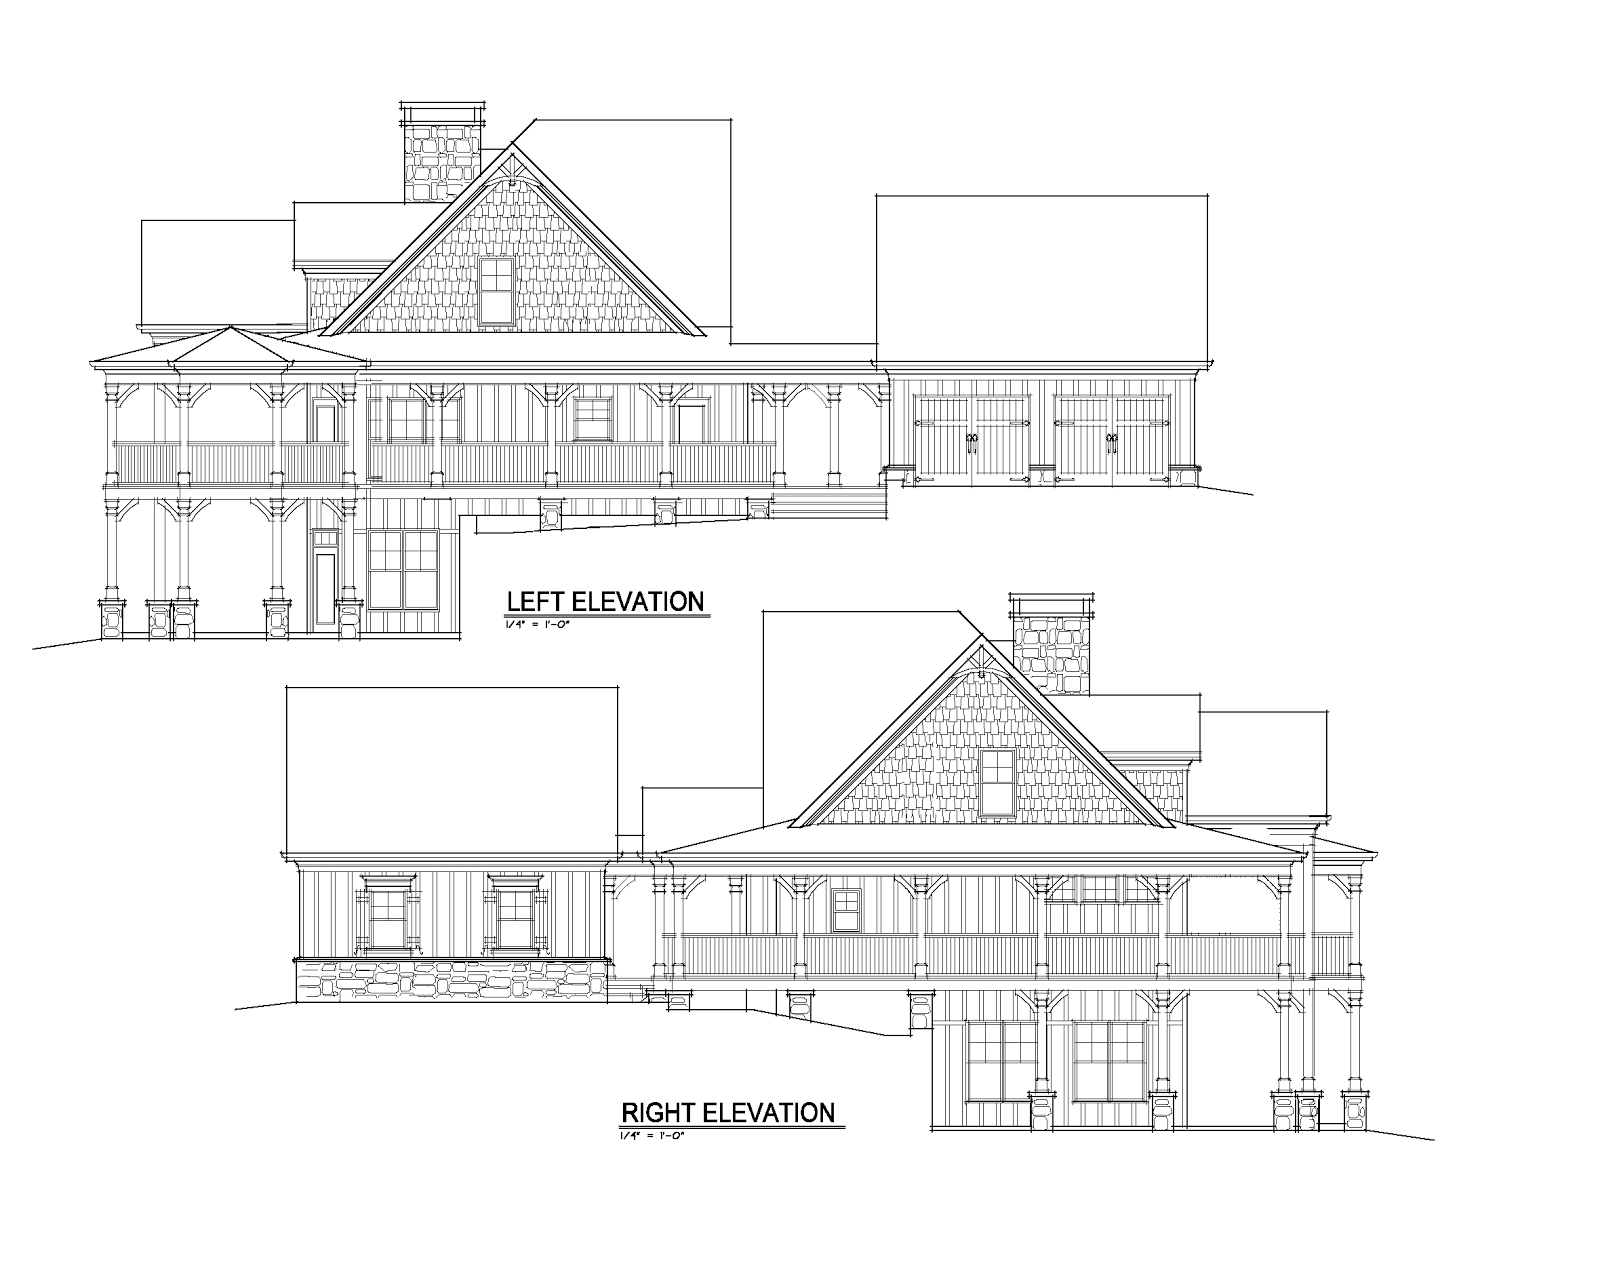 5587 Hartnell Rd: Home Plans